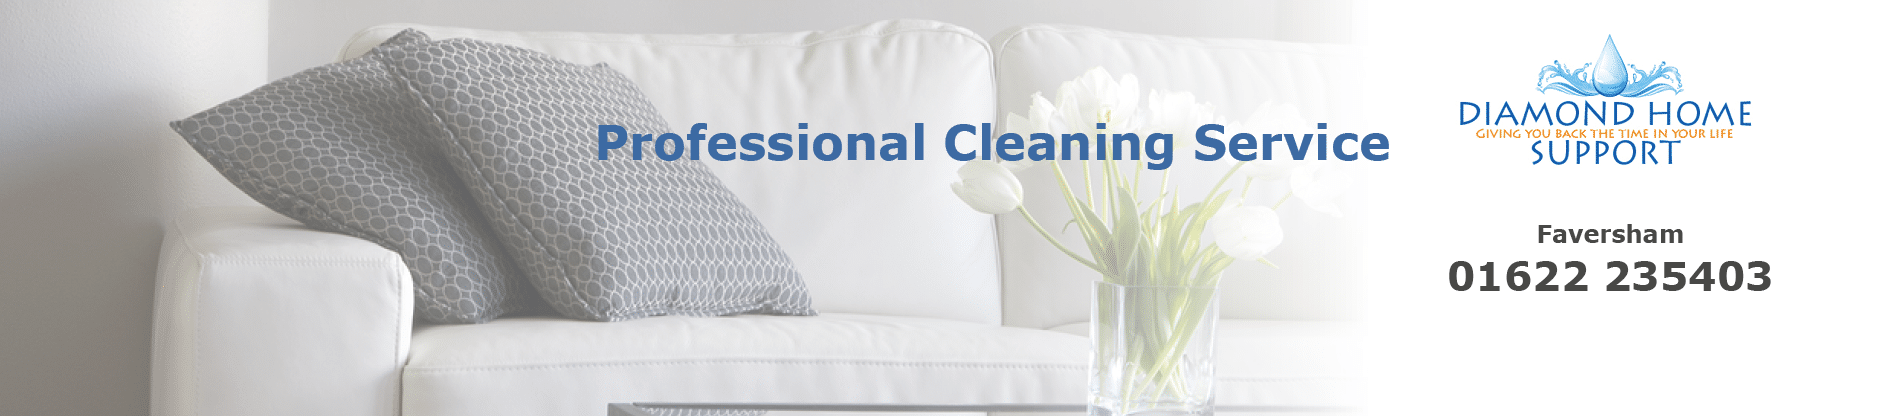 Cleaners in Faversham